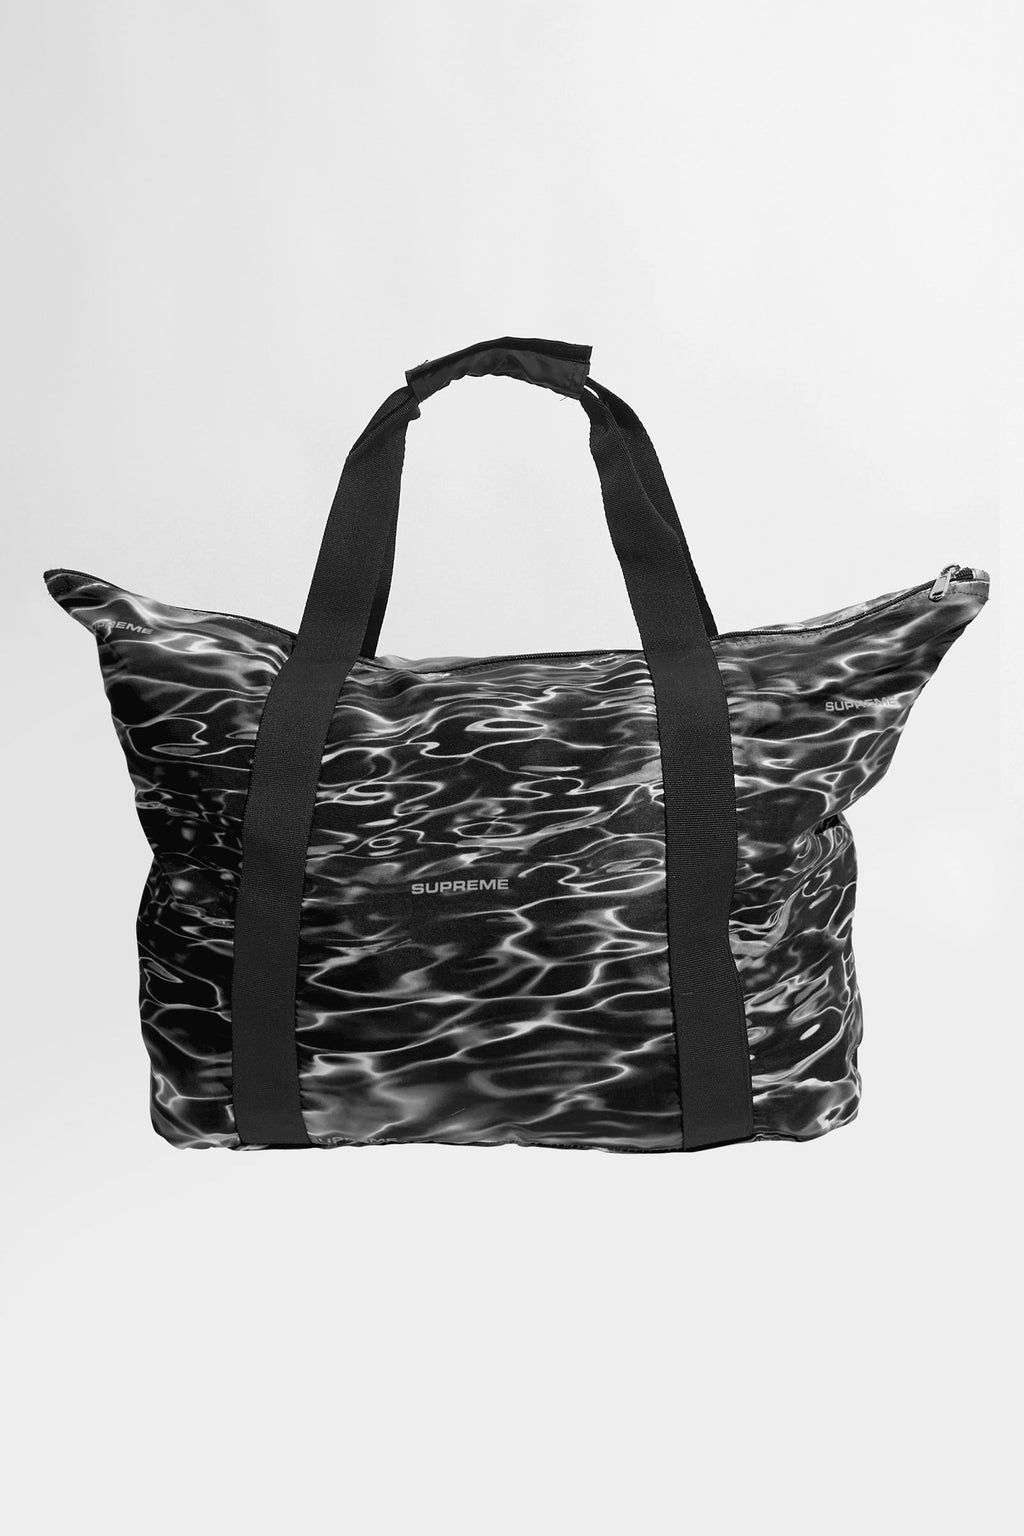 Supreme Black Box Logo Water Ripple Print Tote Bag